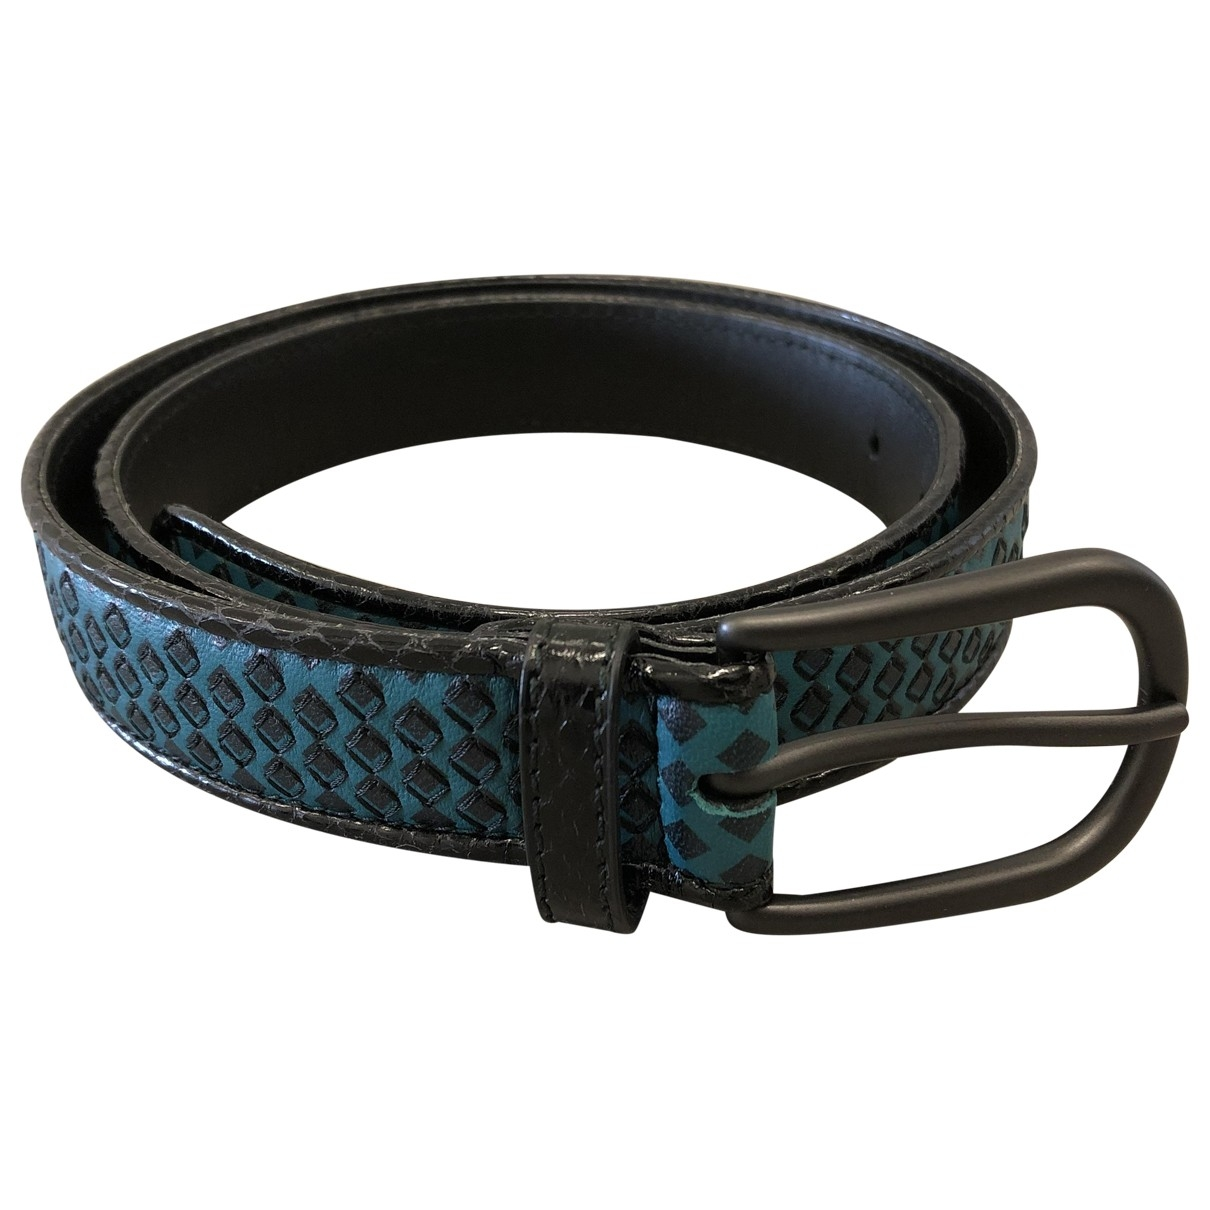 Bottega Veneta \N Black Leather belt for Women 85 cm